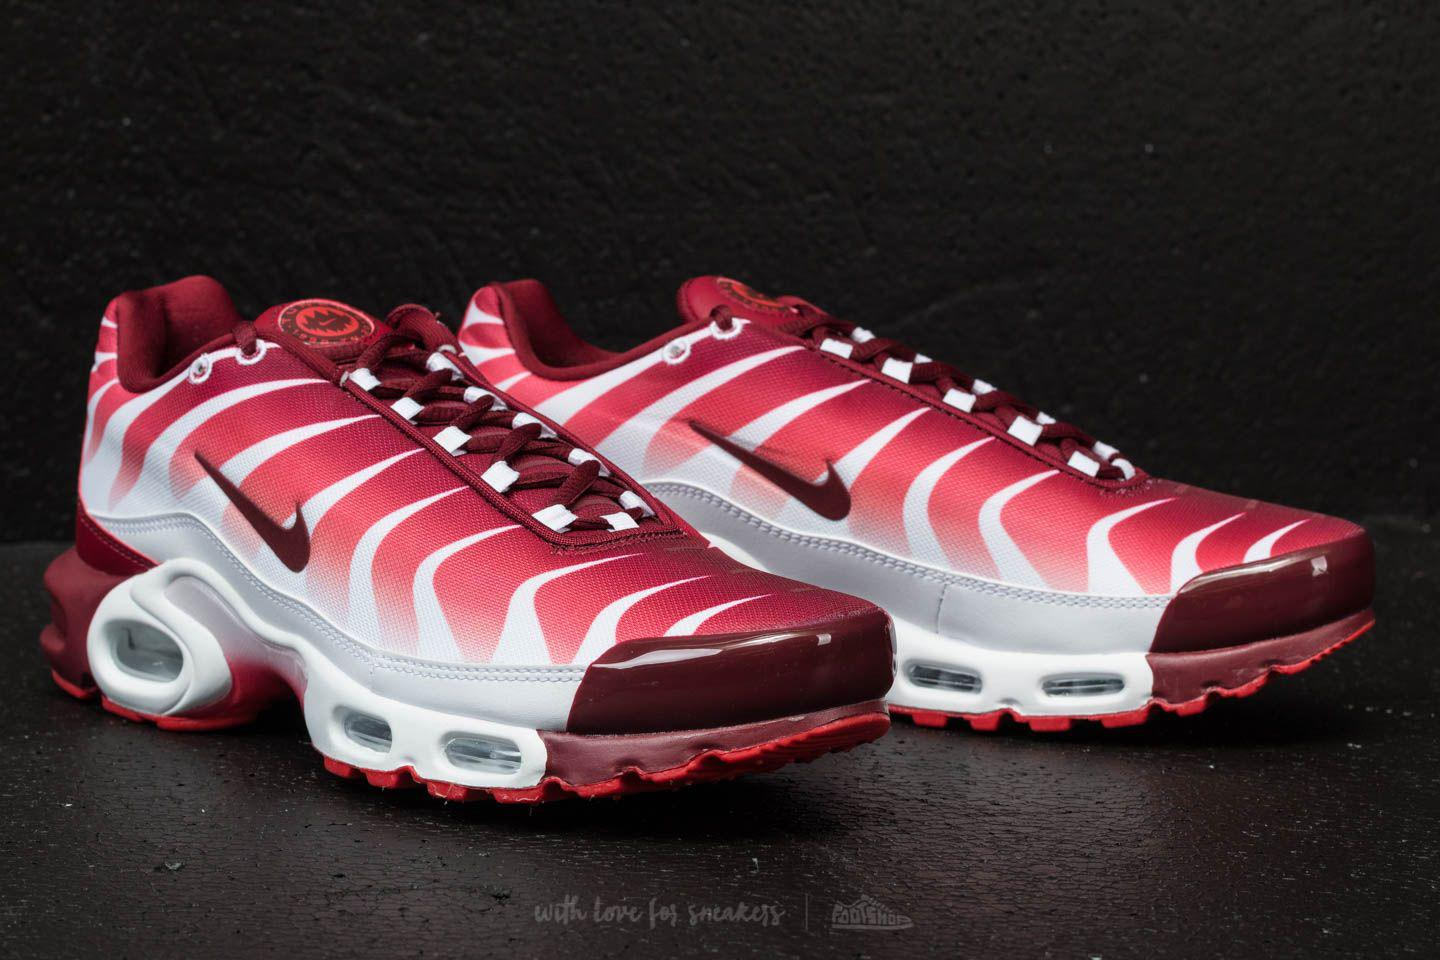 f6c91e1f5077f6 Lyst - Nike Air Max Plus Tn Se White  Team Red-speed Red in Red for Men